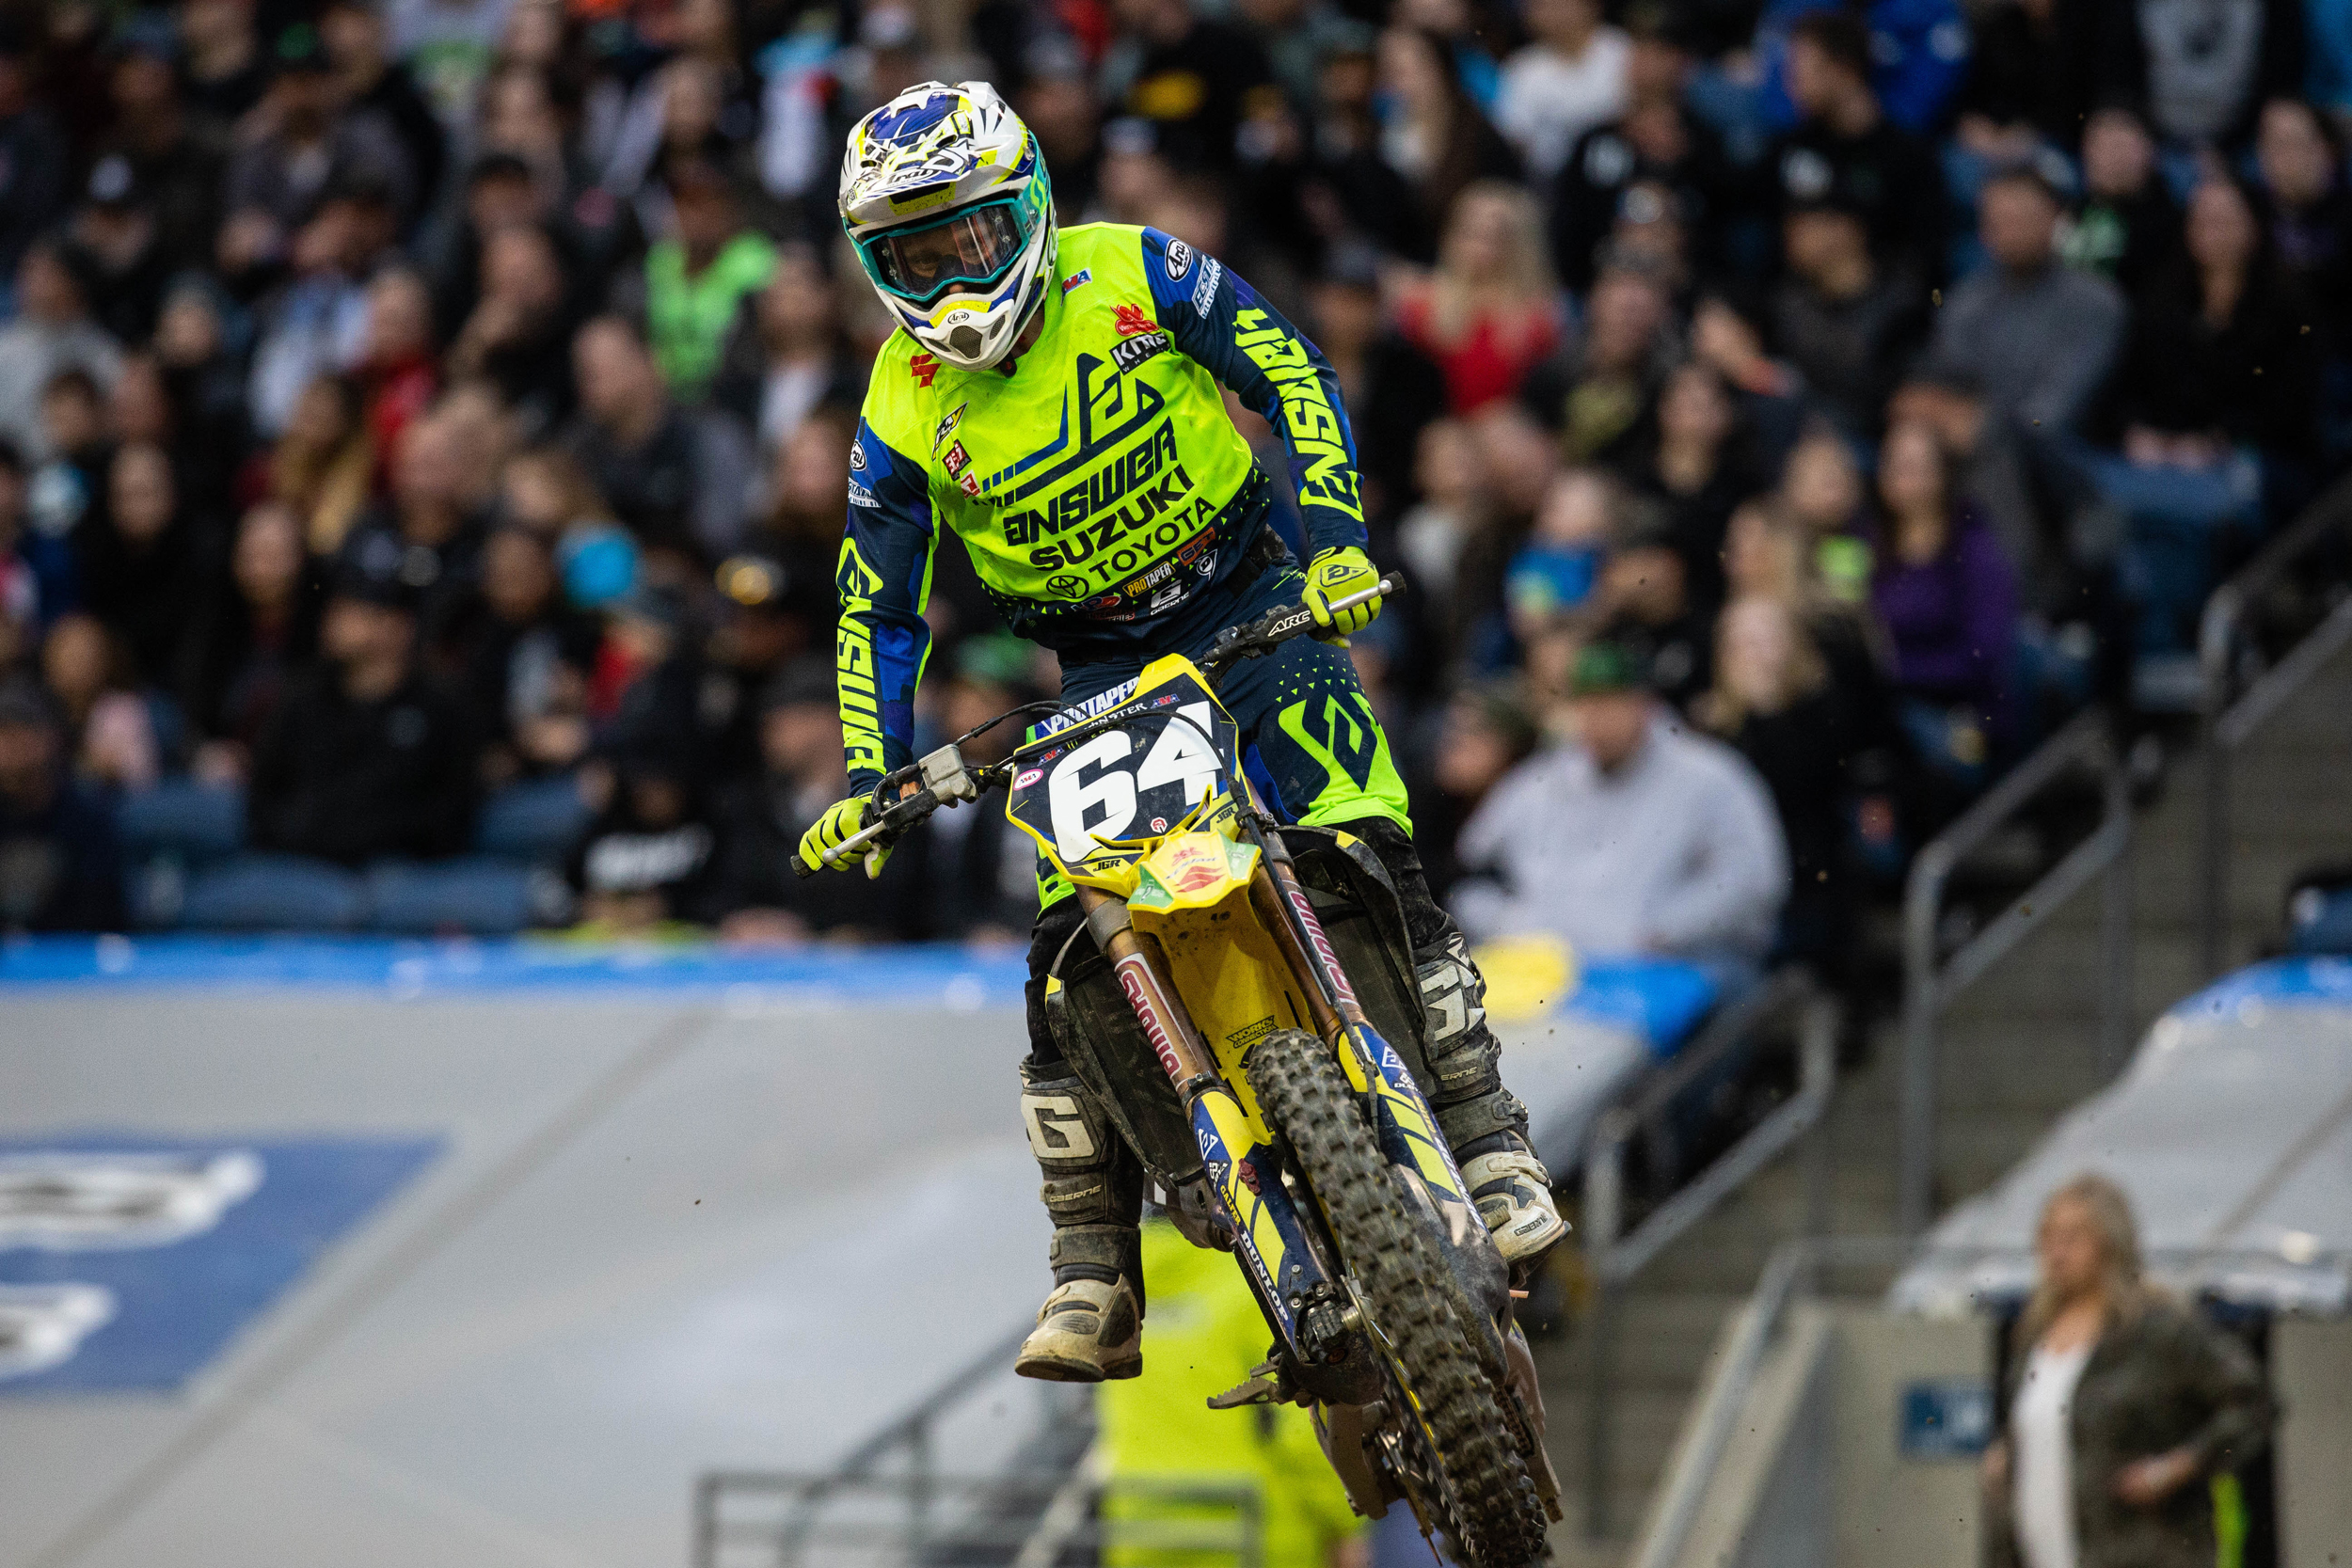 RM-Z250 rider Jimmy Decotis (#64) earns his second podium of the 250 West Series. - Seattle Supercross